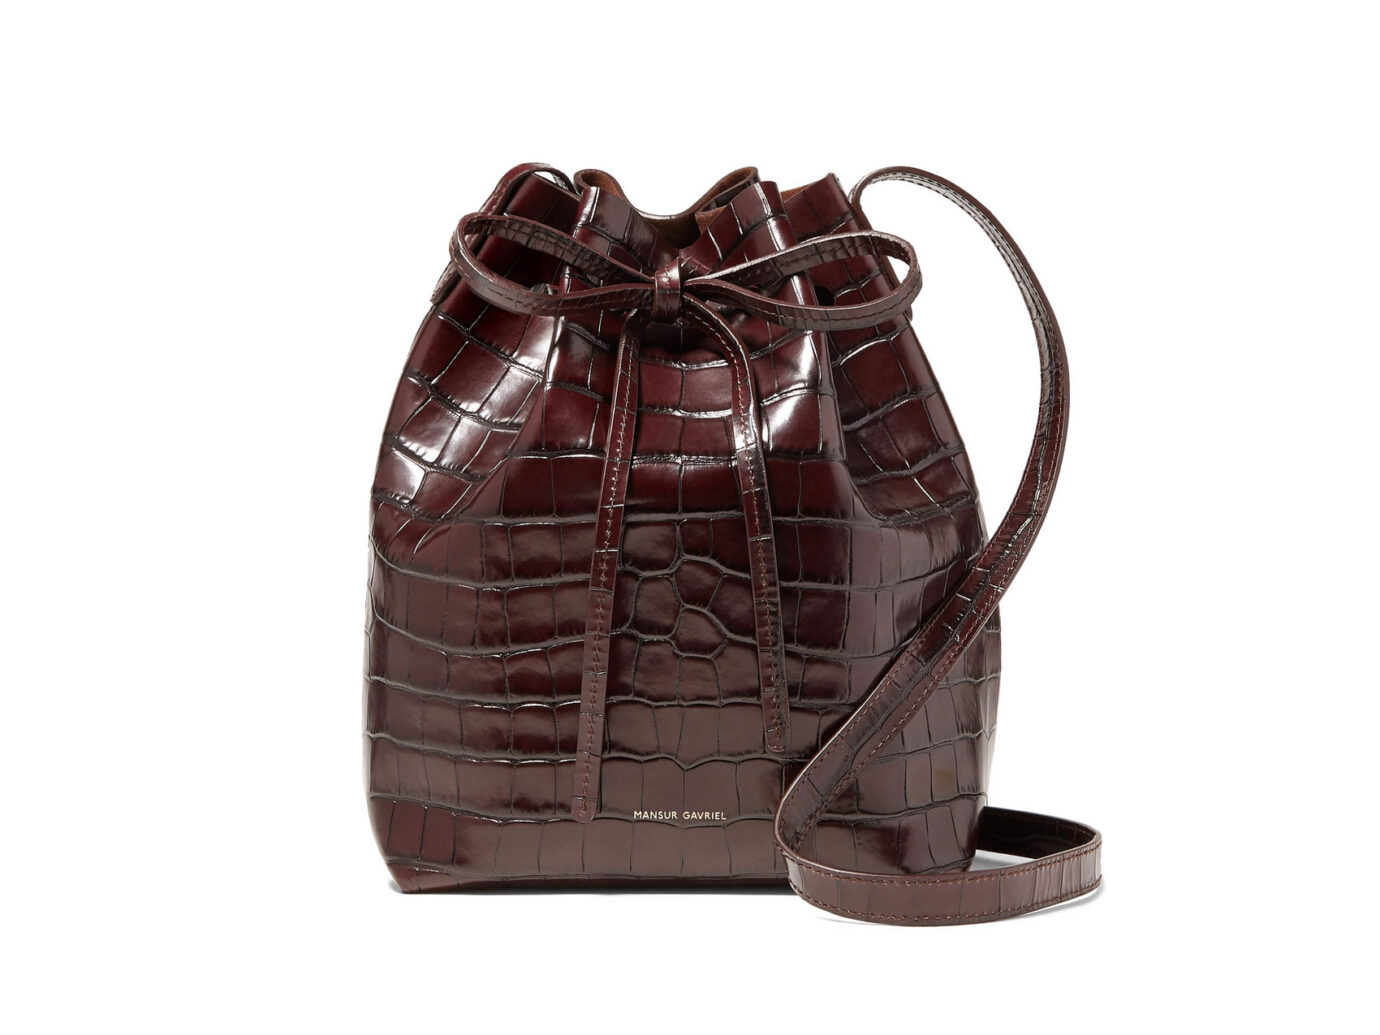 Mansur Gavriel Mini croc-effect leather bucket bag